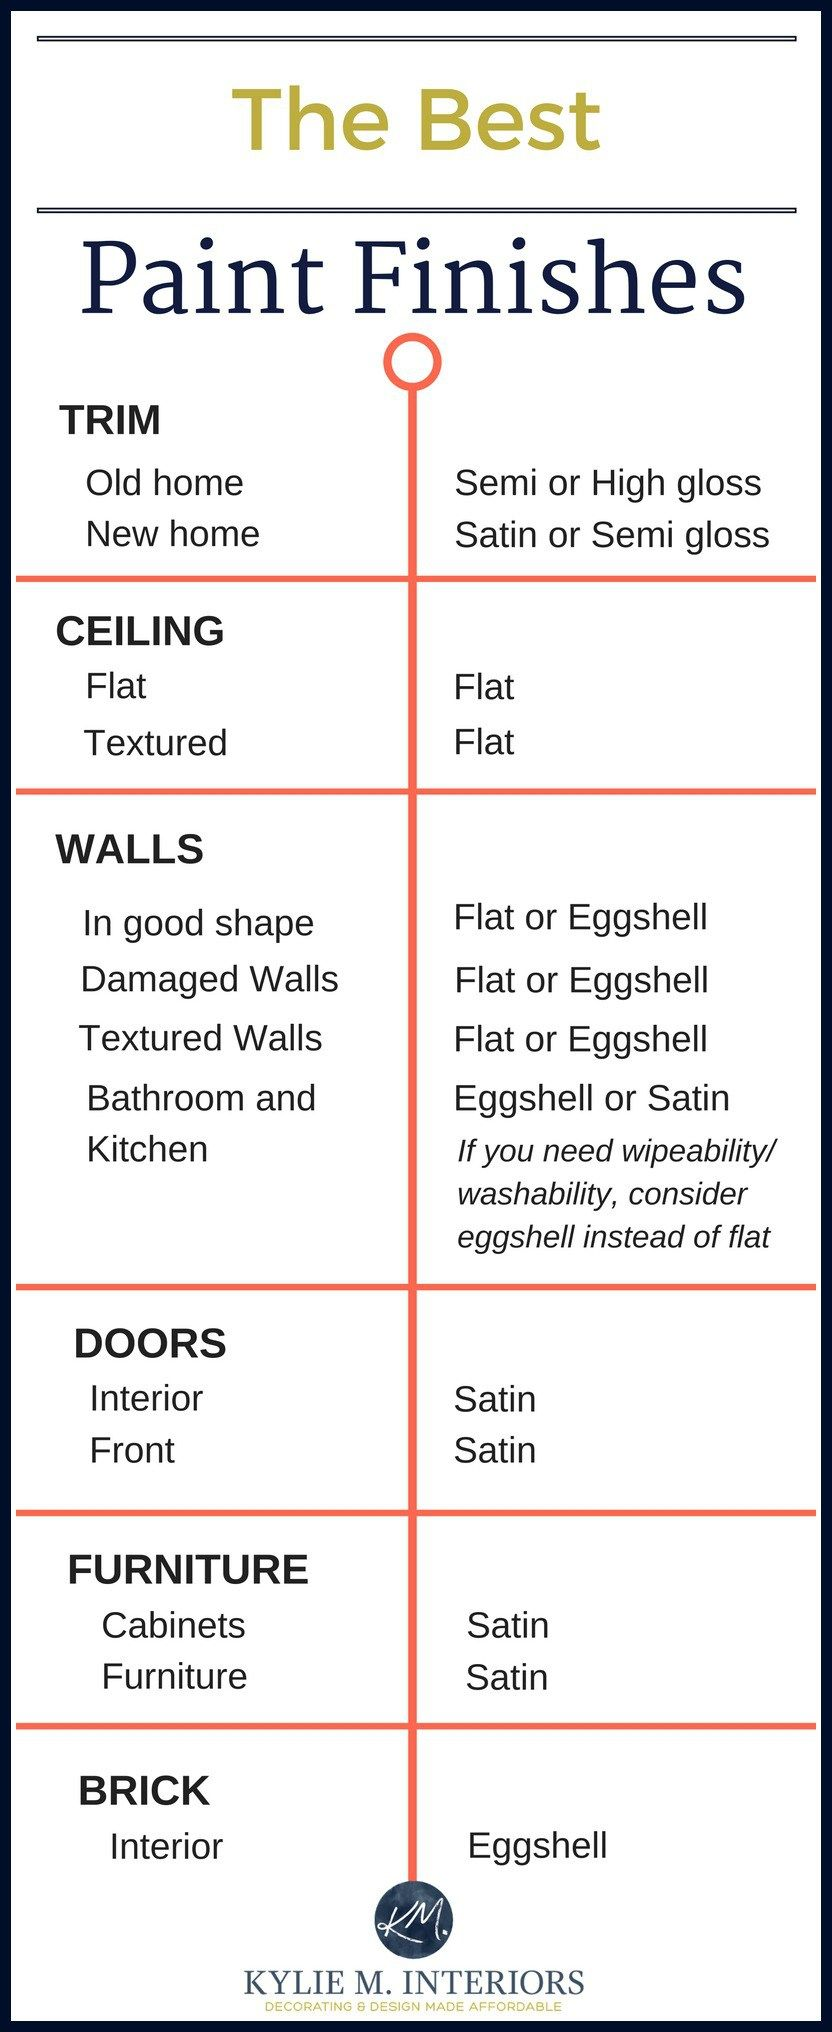 The Best Paint Finish for Walls, Ceilings, Trims, Doors